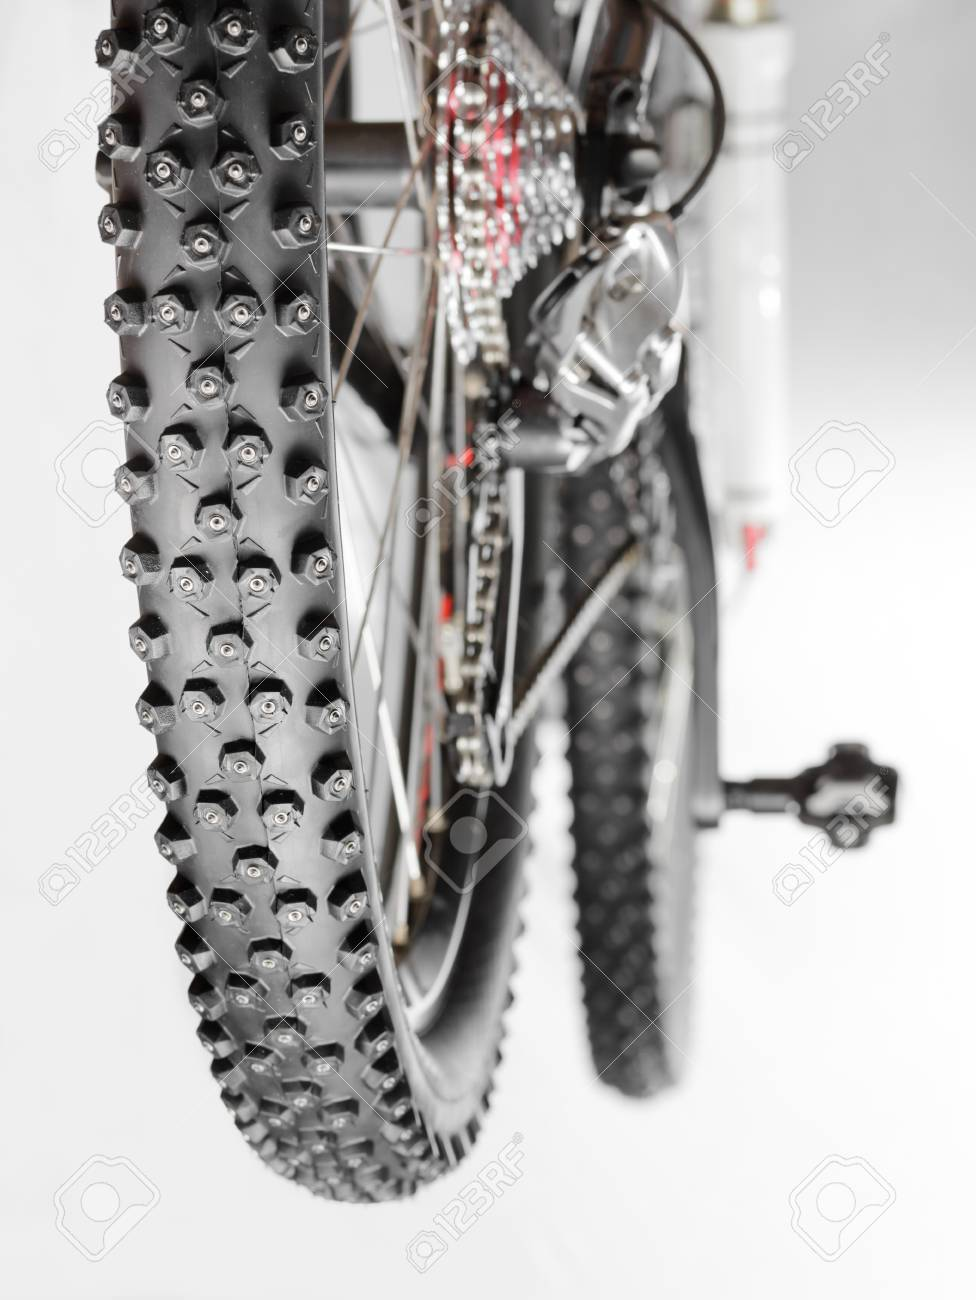 Knobby winter tire with spikes on a mountain bike close-up Stock Photo - 12466554